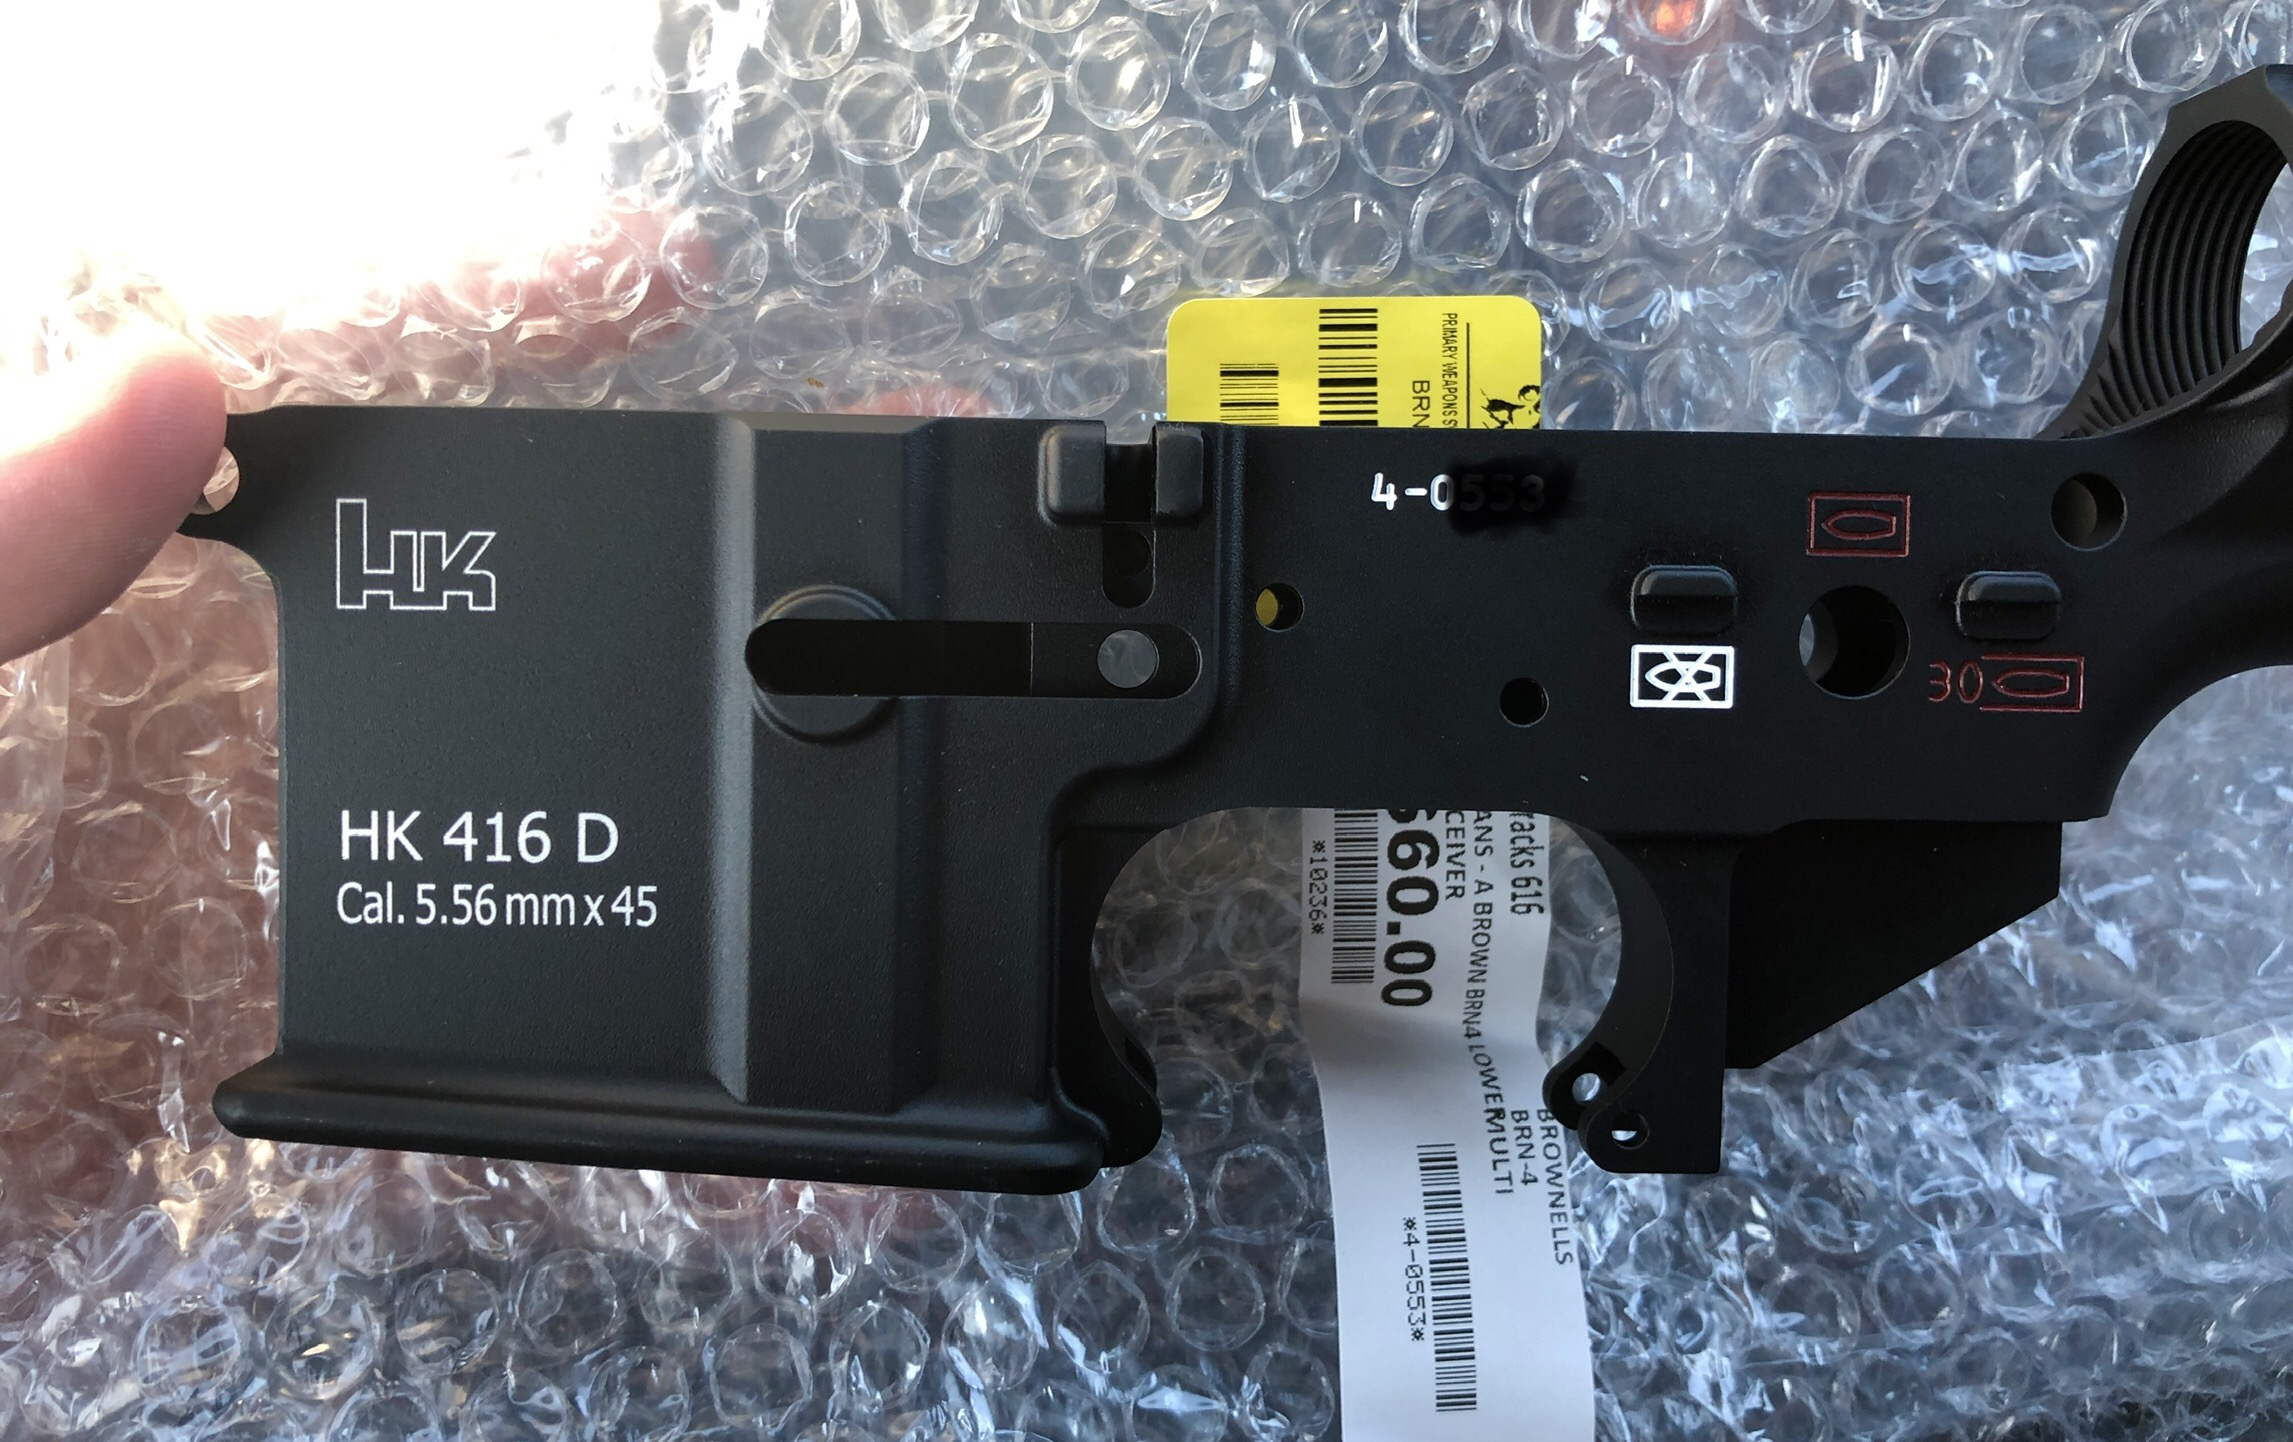 HK416 lower in need of engraving-a94594c6-9539-412c-ad9c-5513cb7fccd3_1550912001453.jpeg